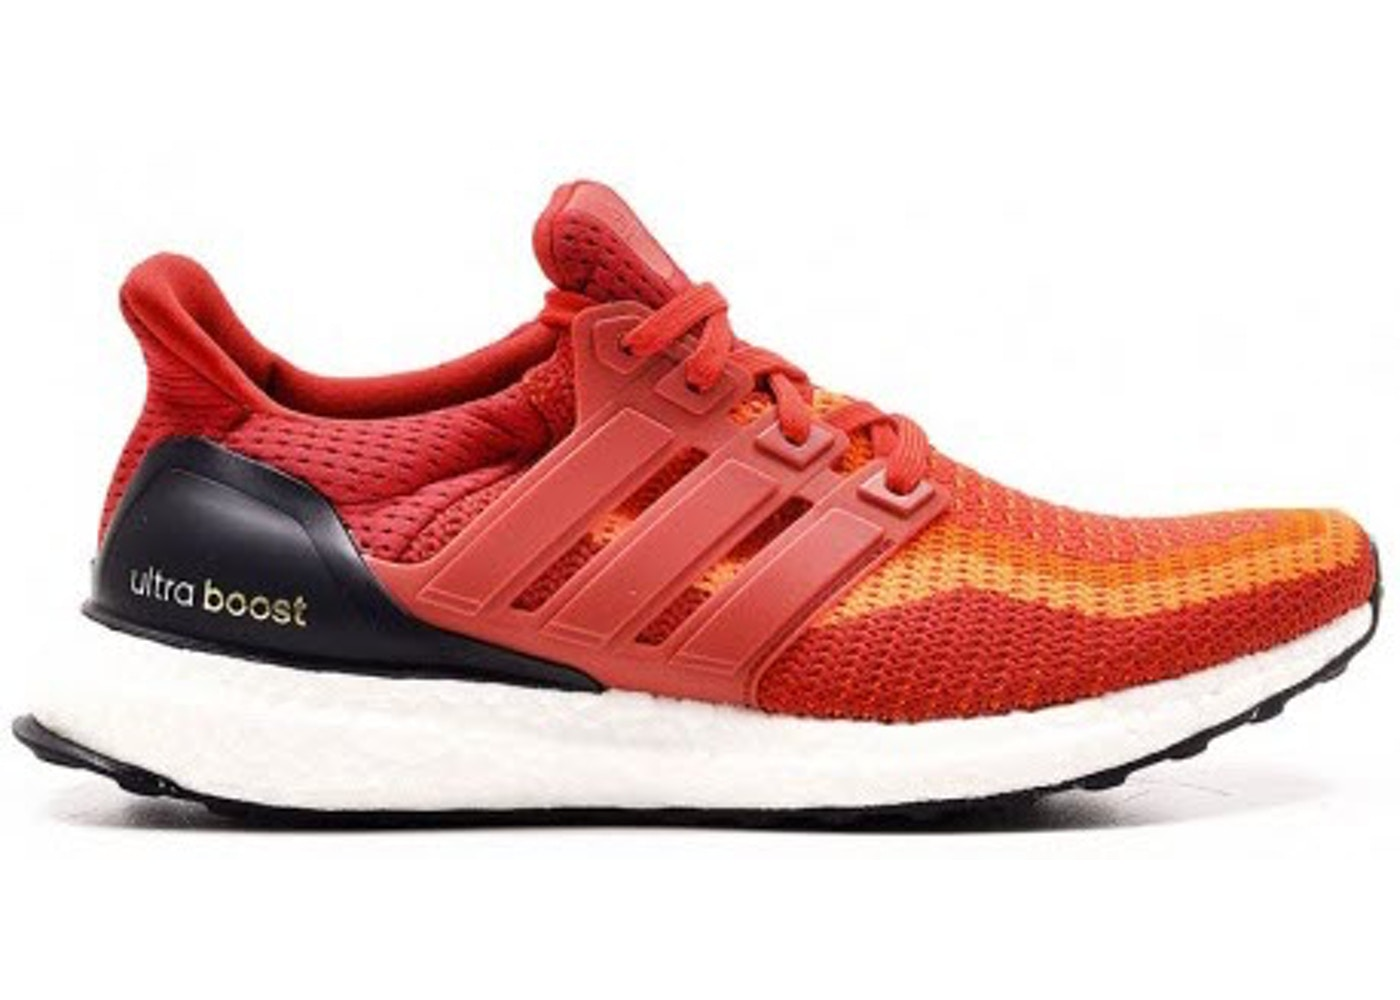 4019d5810f7 adidas Ultra Boost 2.0 Red Gradient - AQ4006